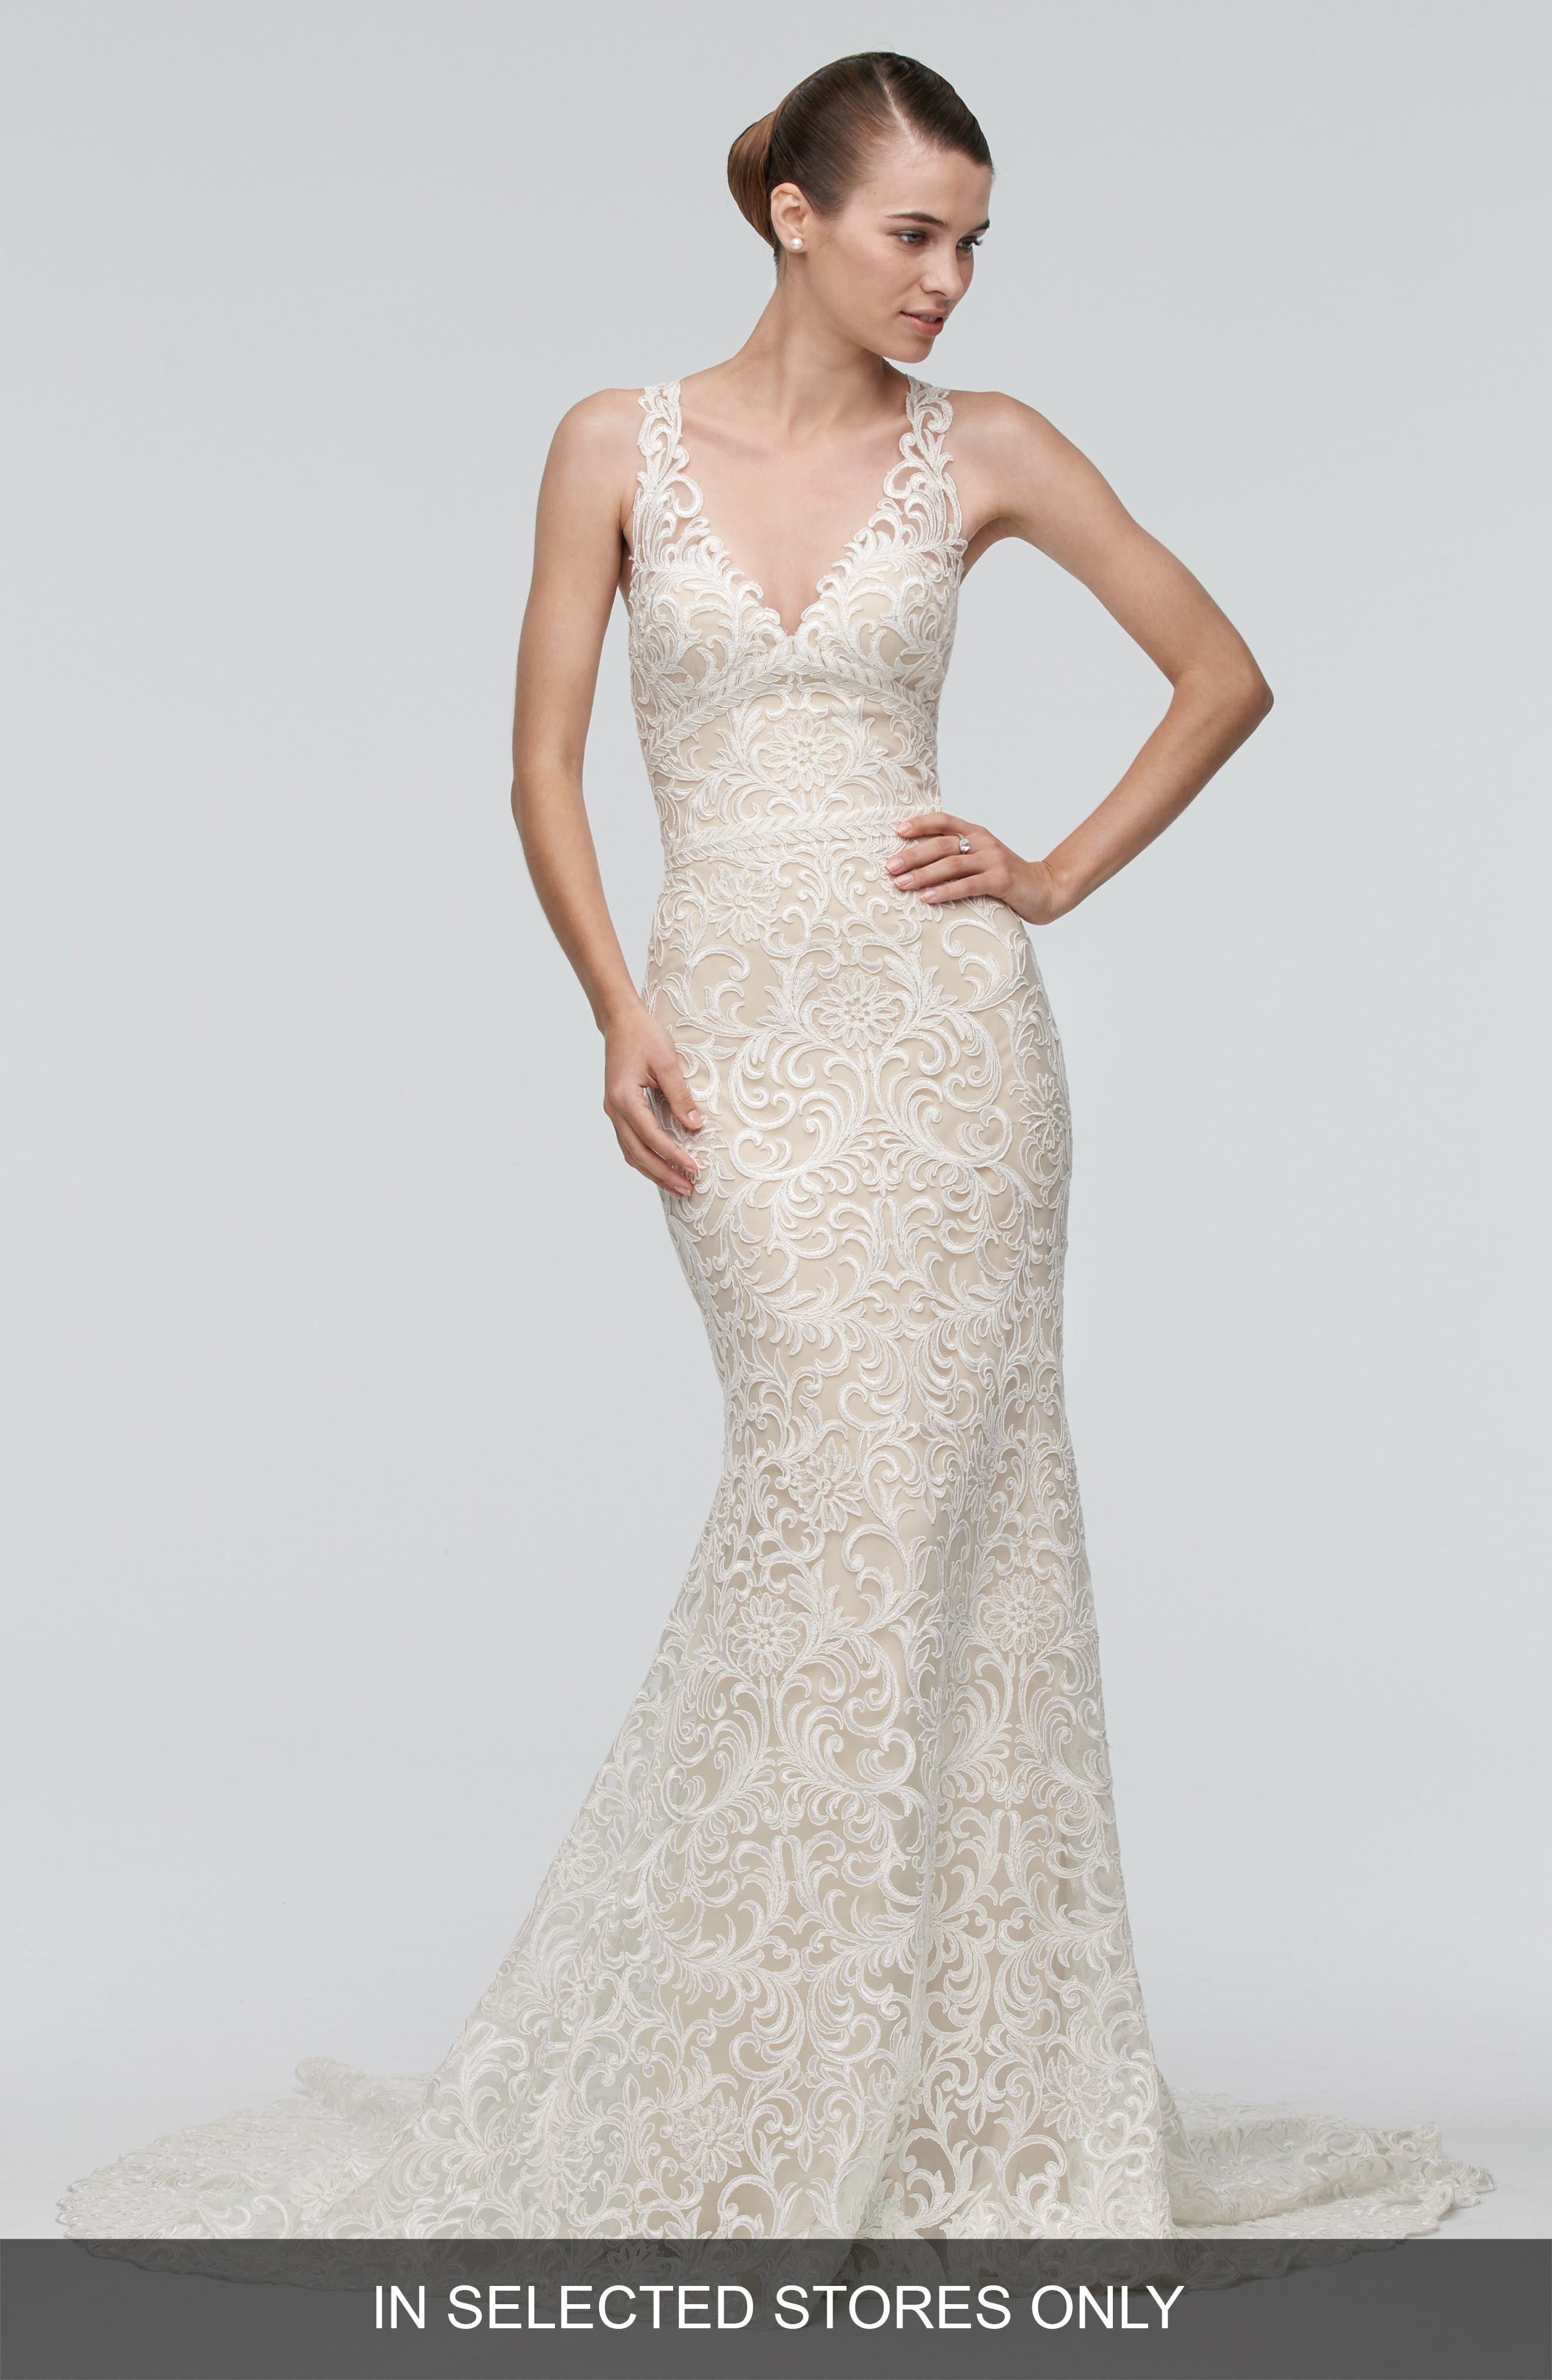 Georgia Back Cutout Lace Trumpet Gown,                             Alternate thumbnail 3, color,                             IVORY/NUDE